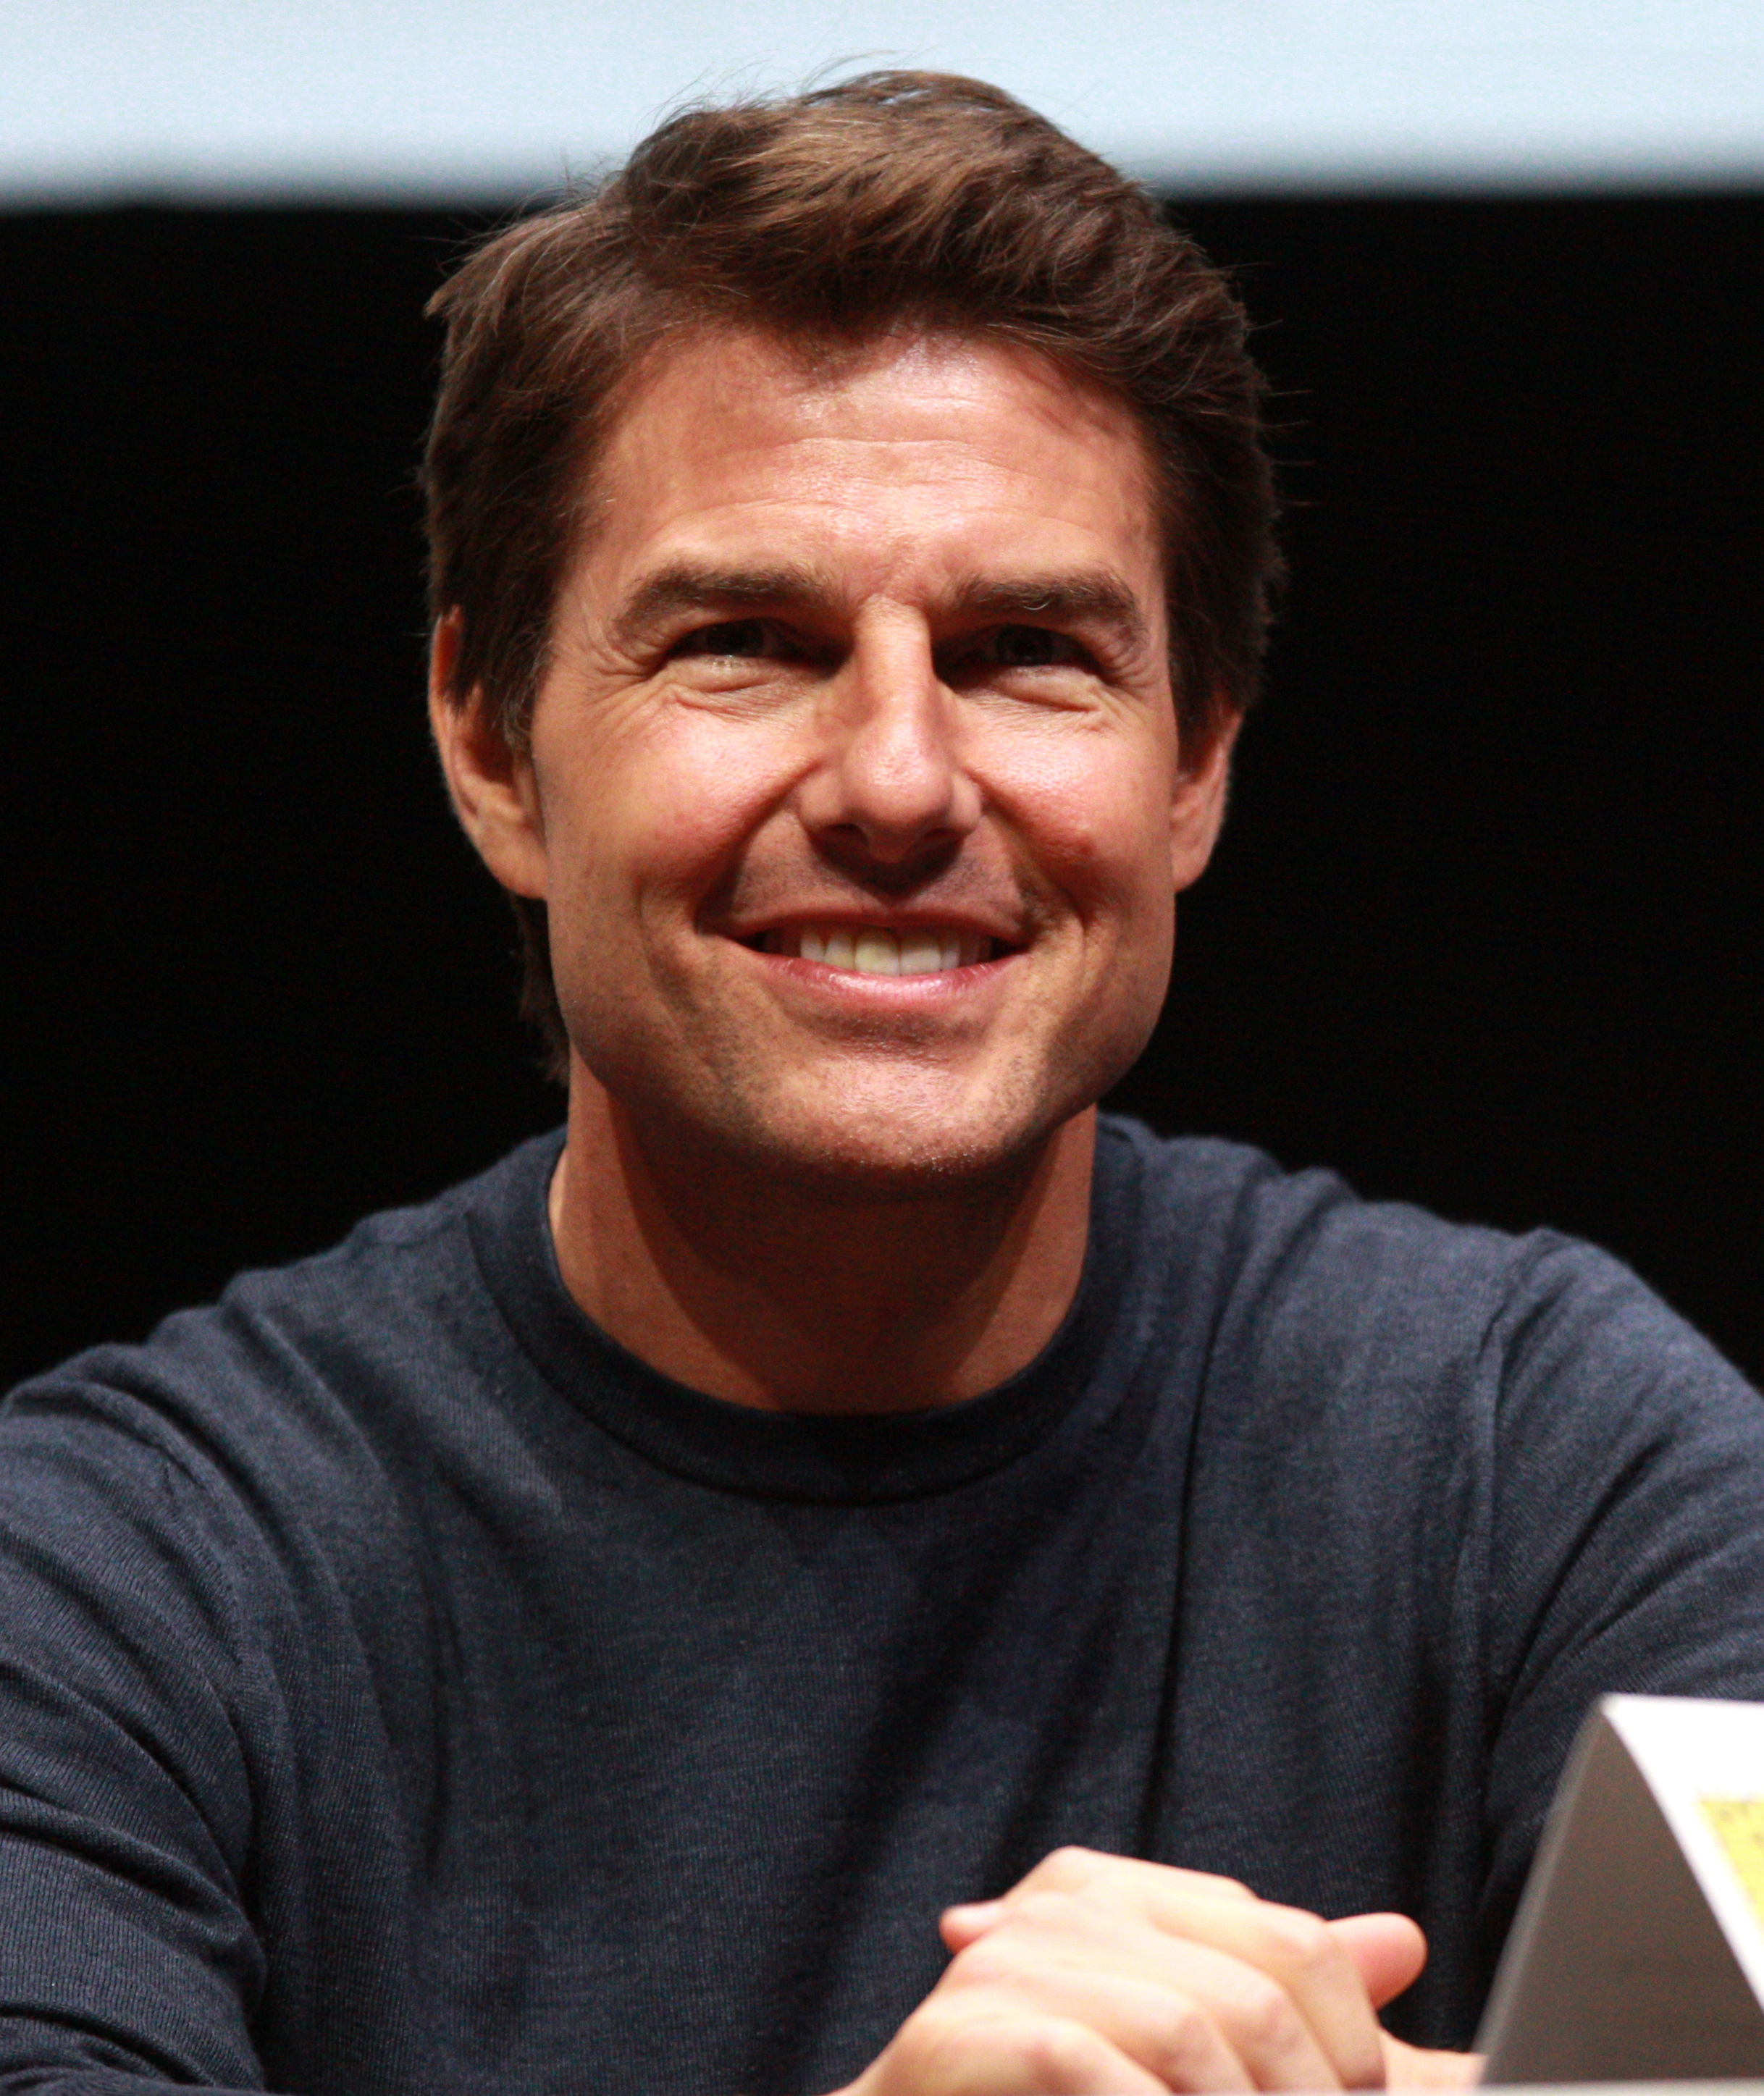 The 56-year old son of father Thomas Mapother III and mother Mary Lee Pfeiffer South Tom Cruise in 2019 photo. Tom Cruise earned a 20 million dollar salary - leaving the net worth at 480 million in 2019